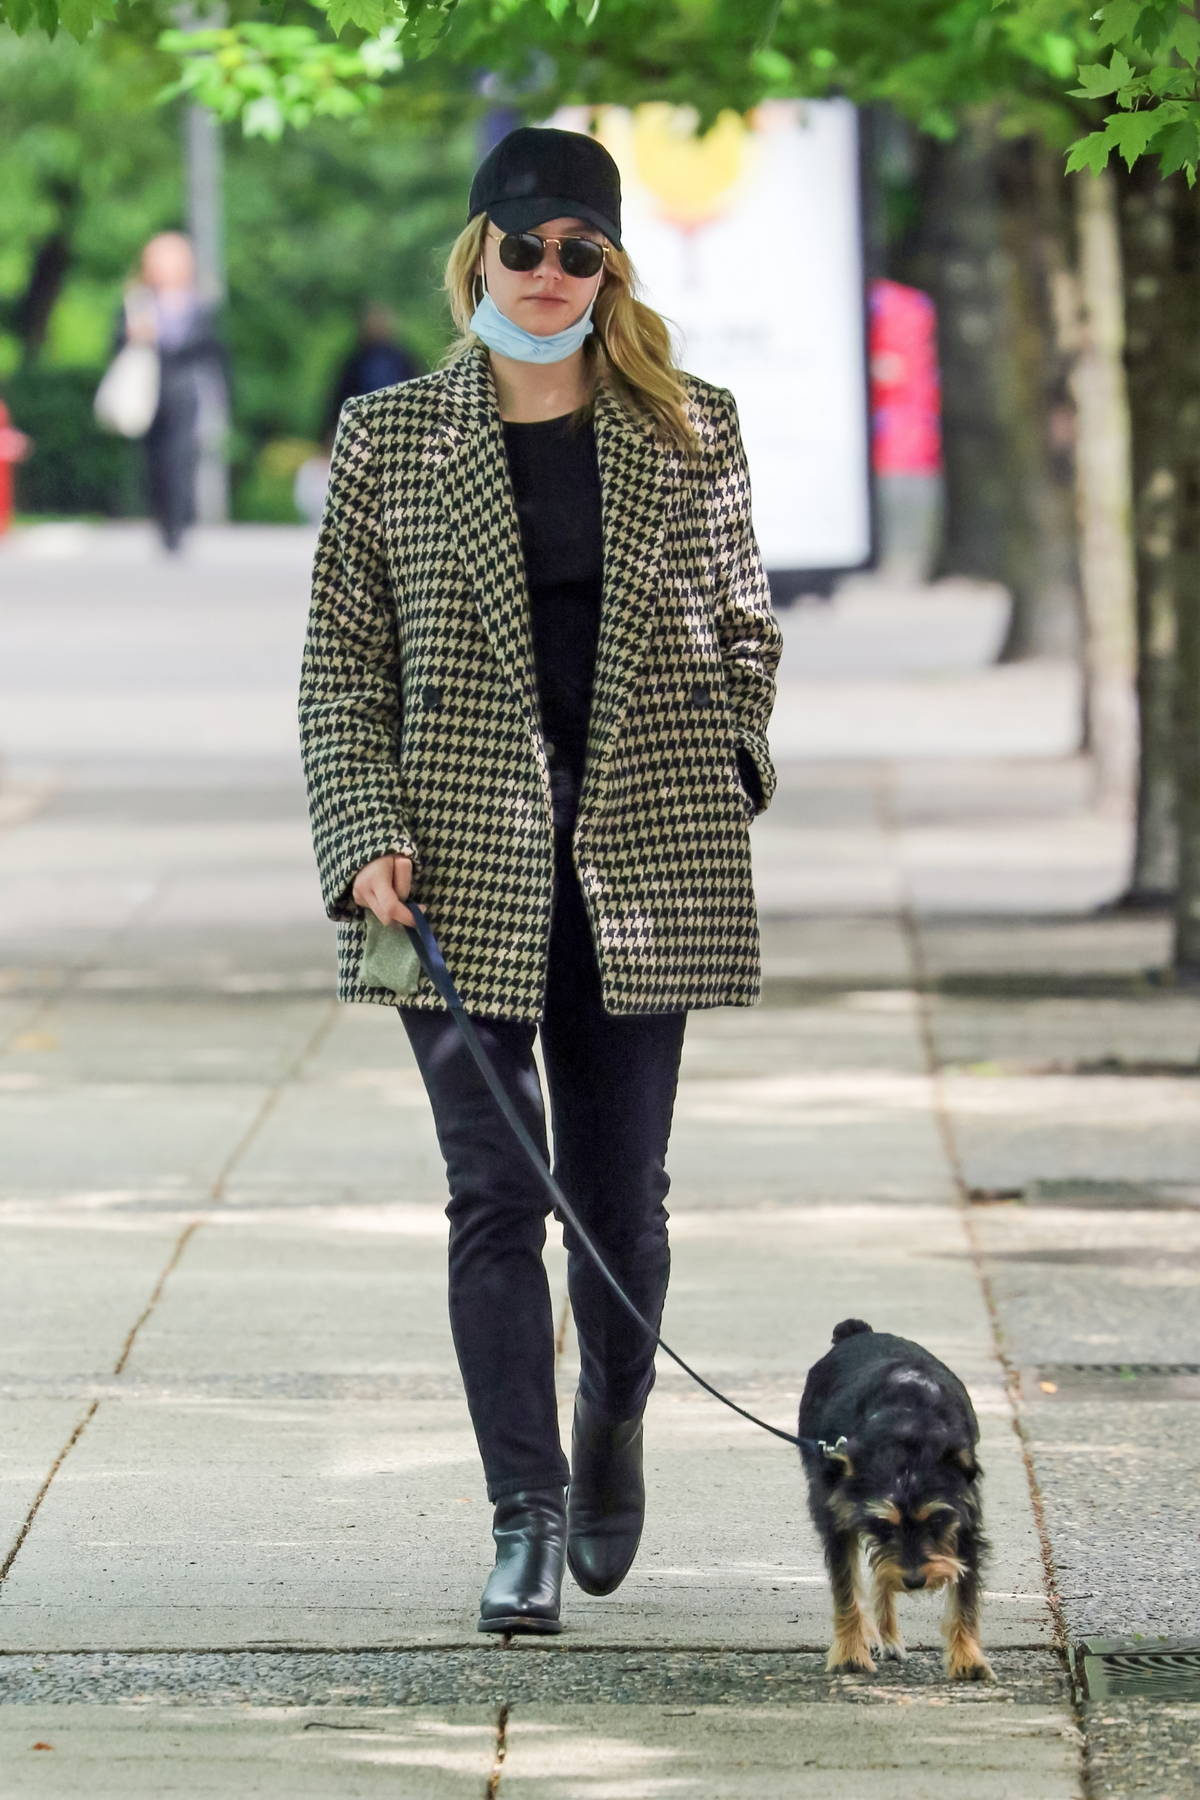 Lili Reinhart dons a houndstooth coat while walking her dog in Vancouver, California